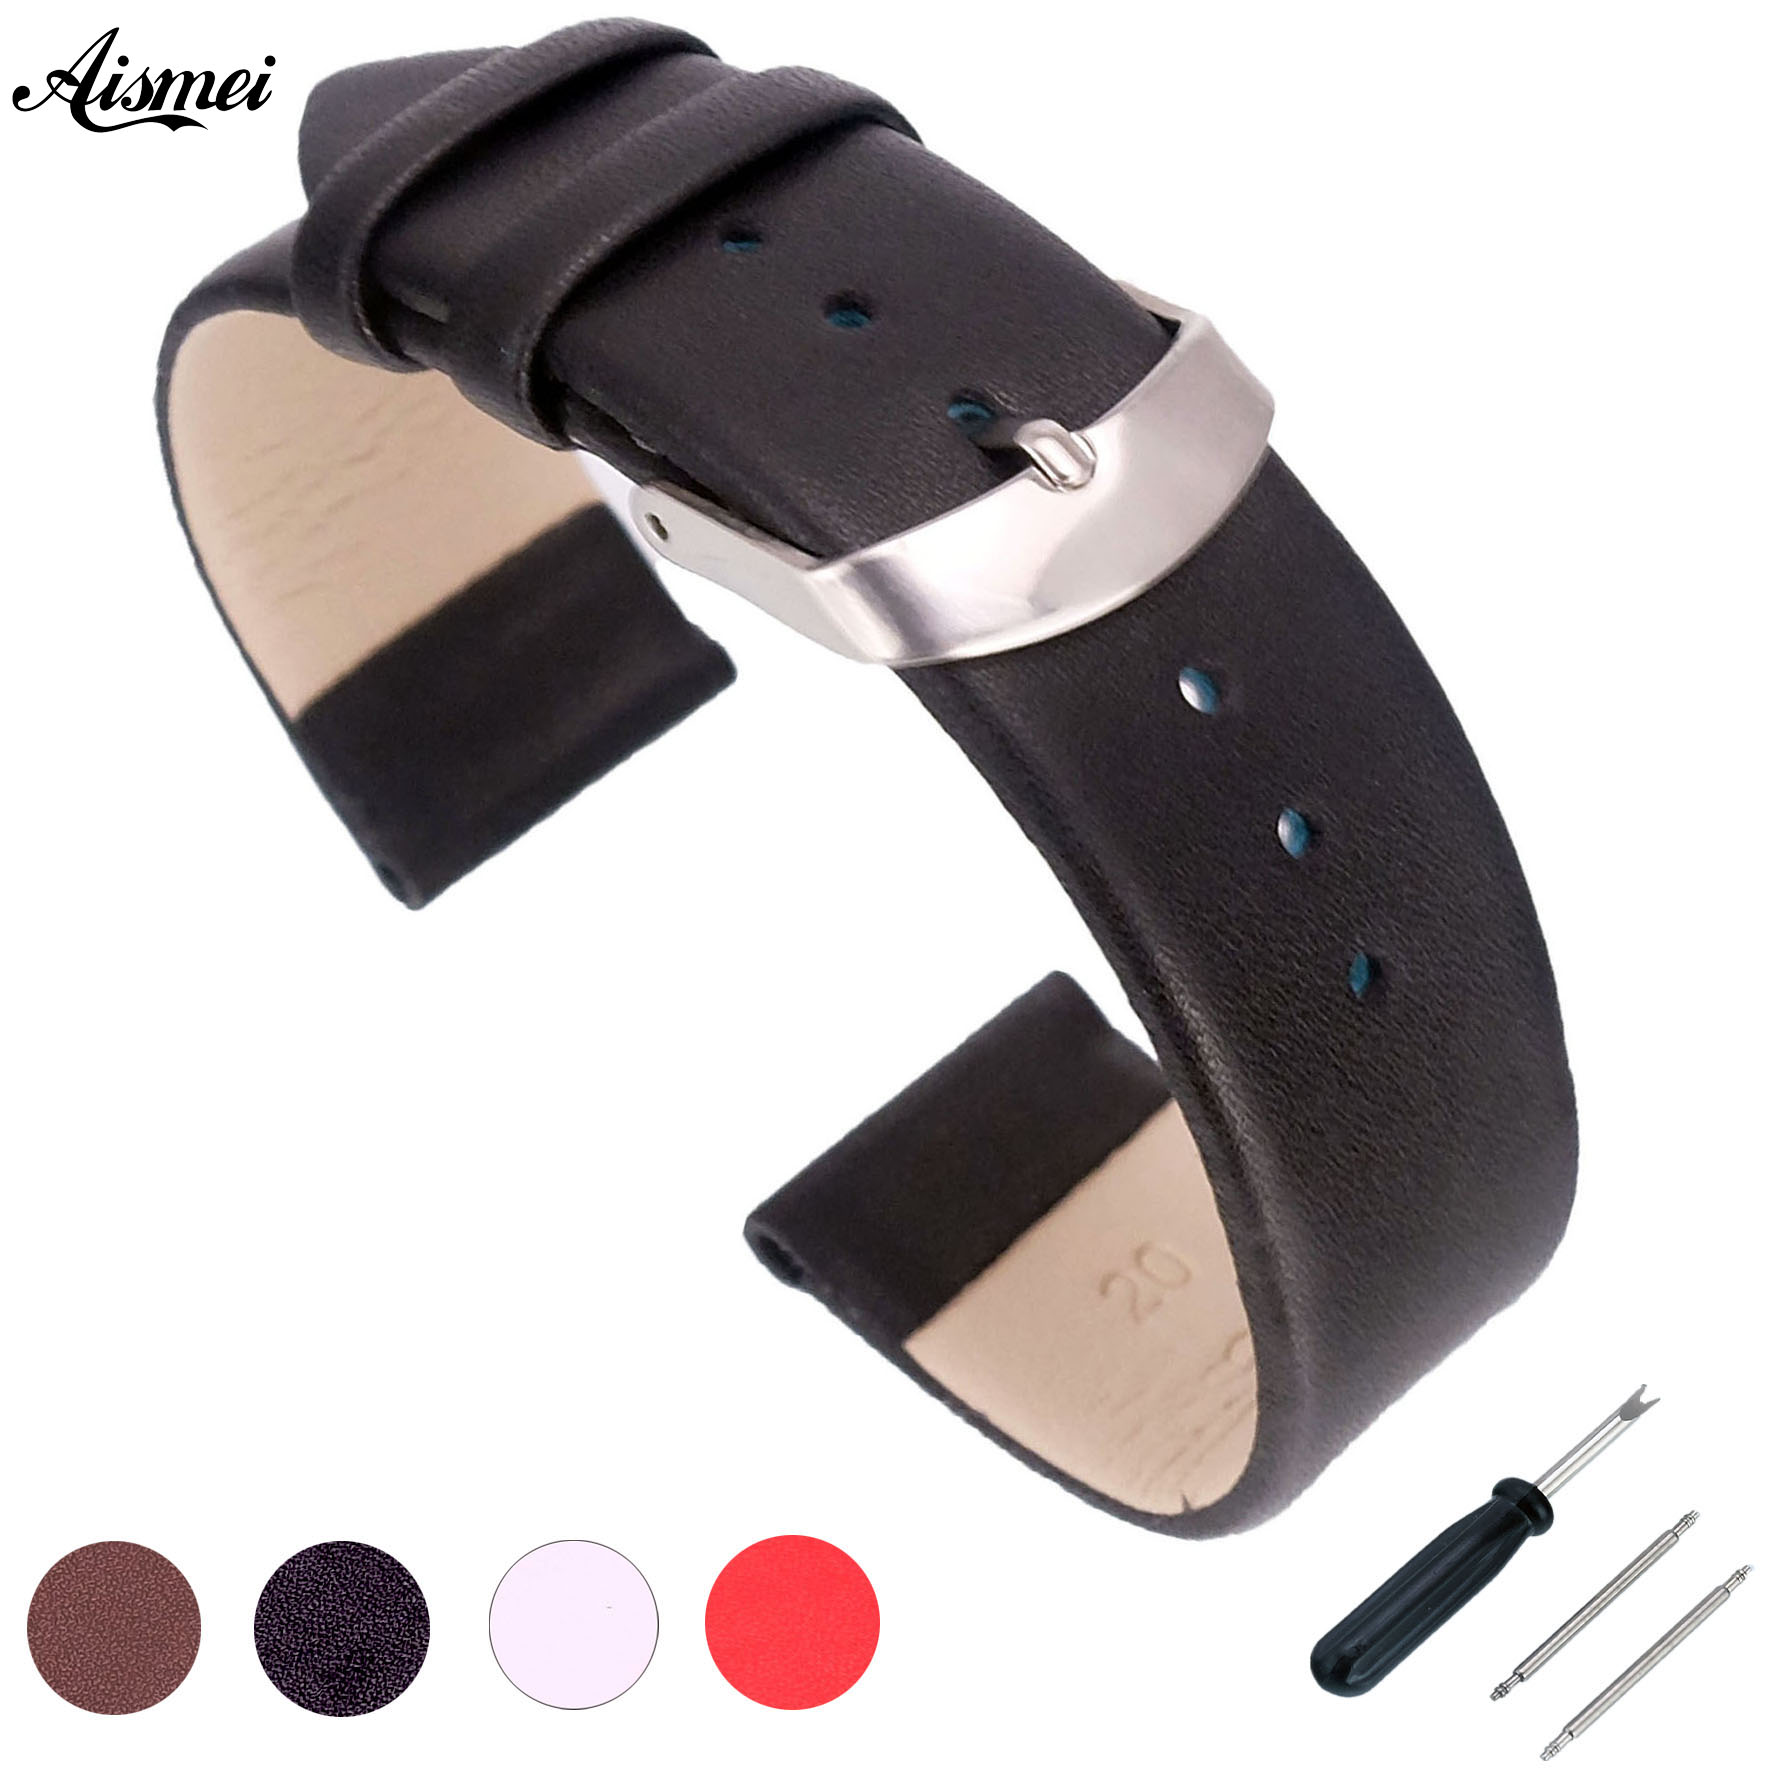 2018 Watch Accessories Pin buckle Watch Bracelet Belt Soft Genuine Leather Watch Band Watch Strap 12 14 16 18 20 22mm Watchbands maikes hq 16 18 20 22 24 mm genuine alligator leather strap watch band brown with pin buckle men watchbands bracelet accessories